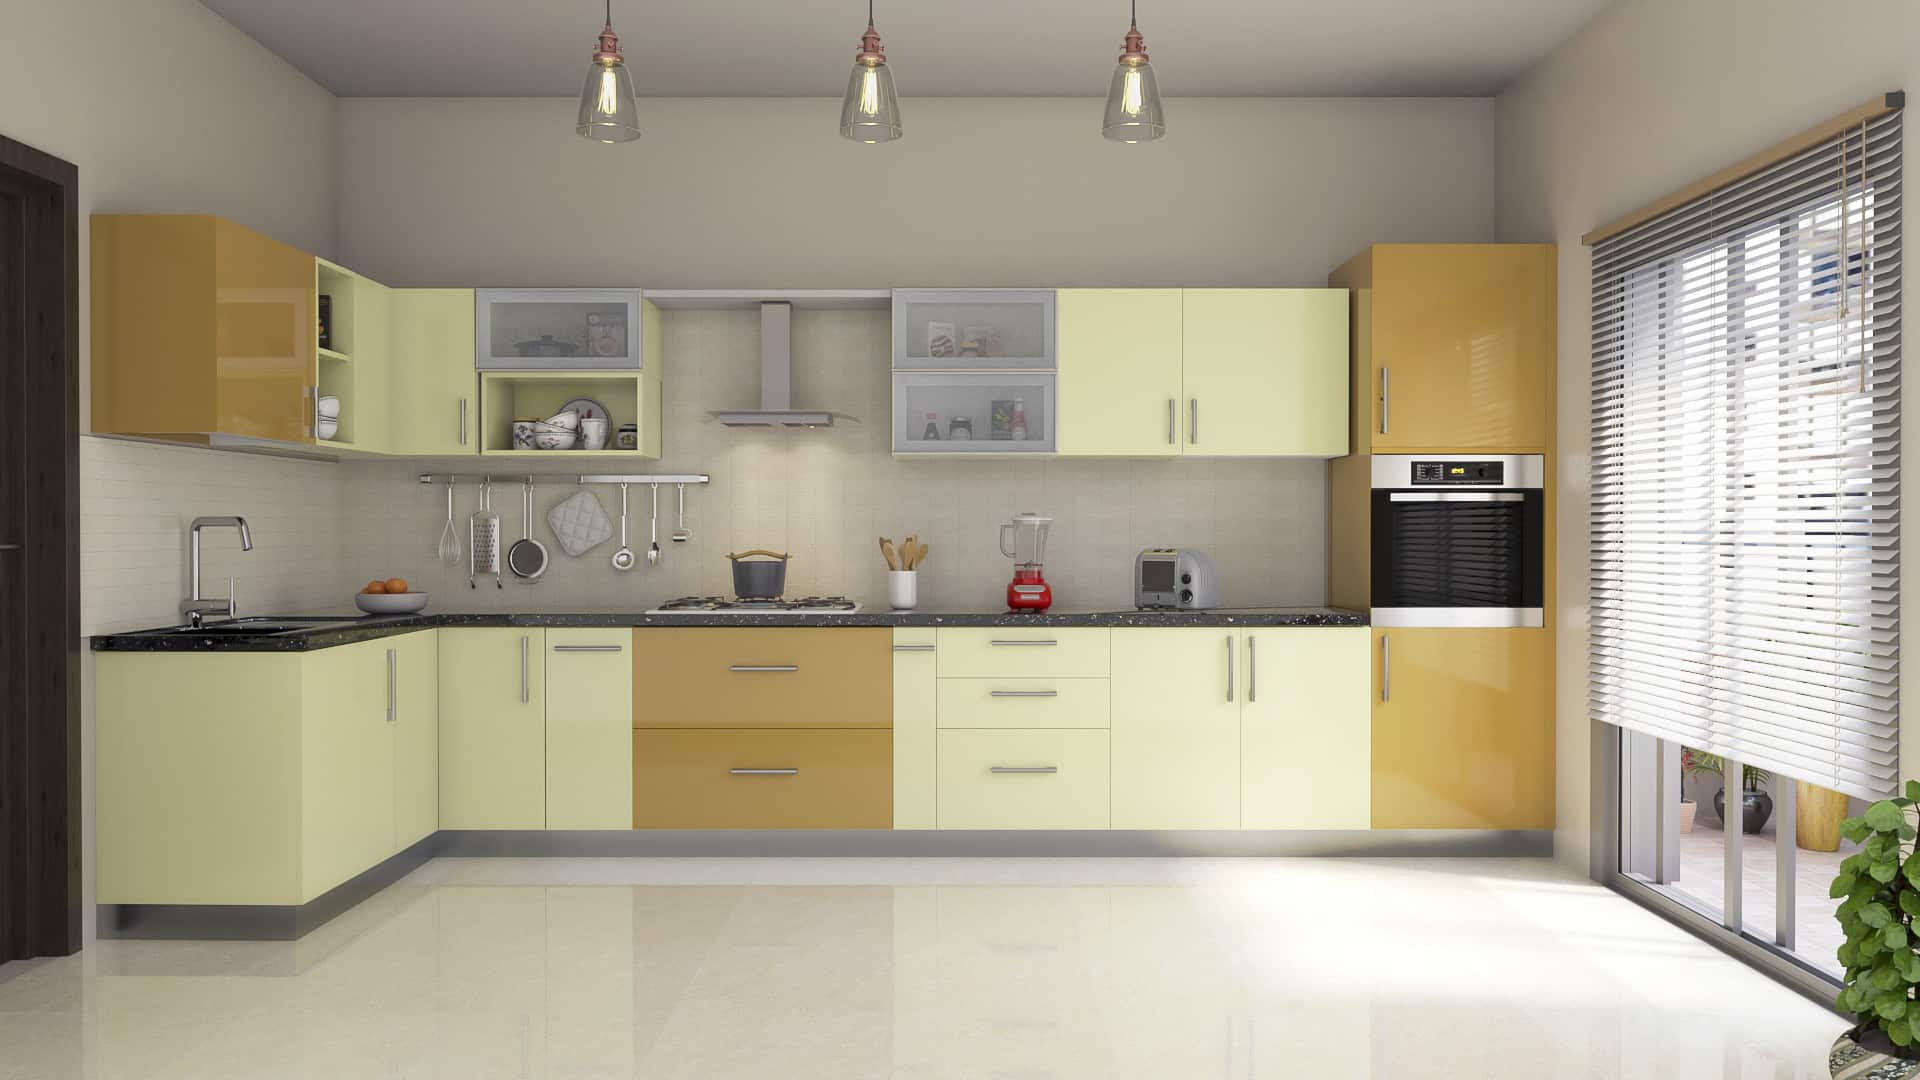 L shaped modular kitchen designs india homelane Modular kitchen designs for small kitchens